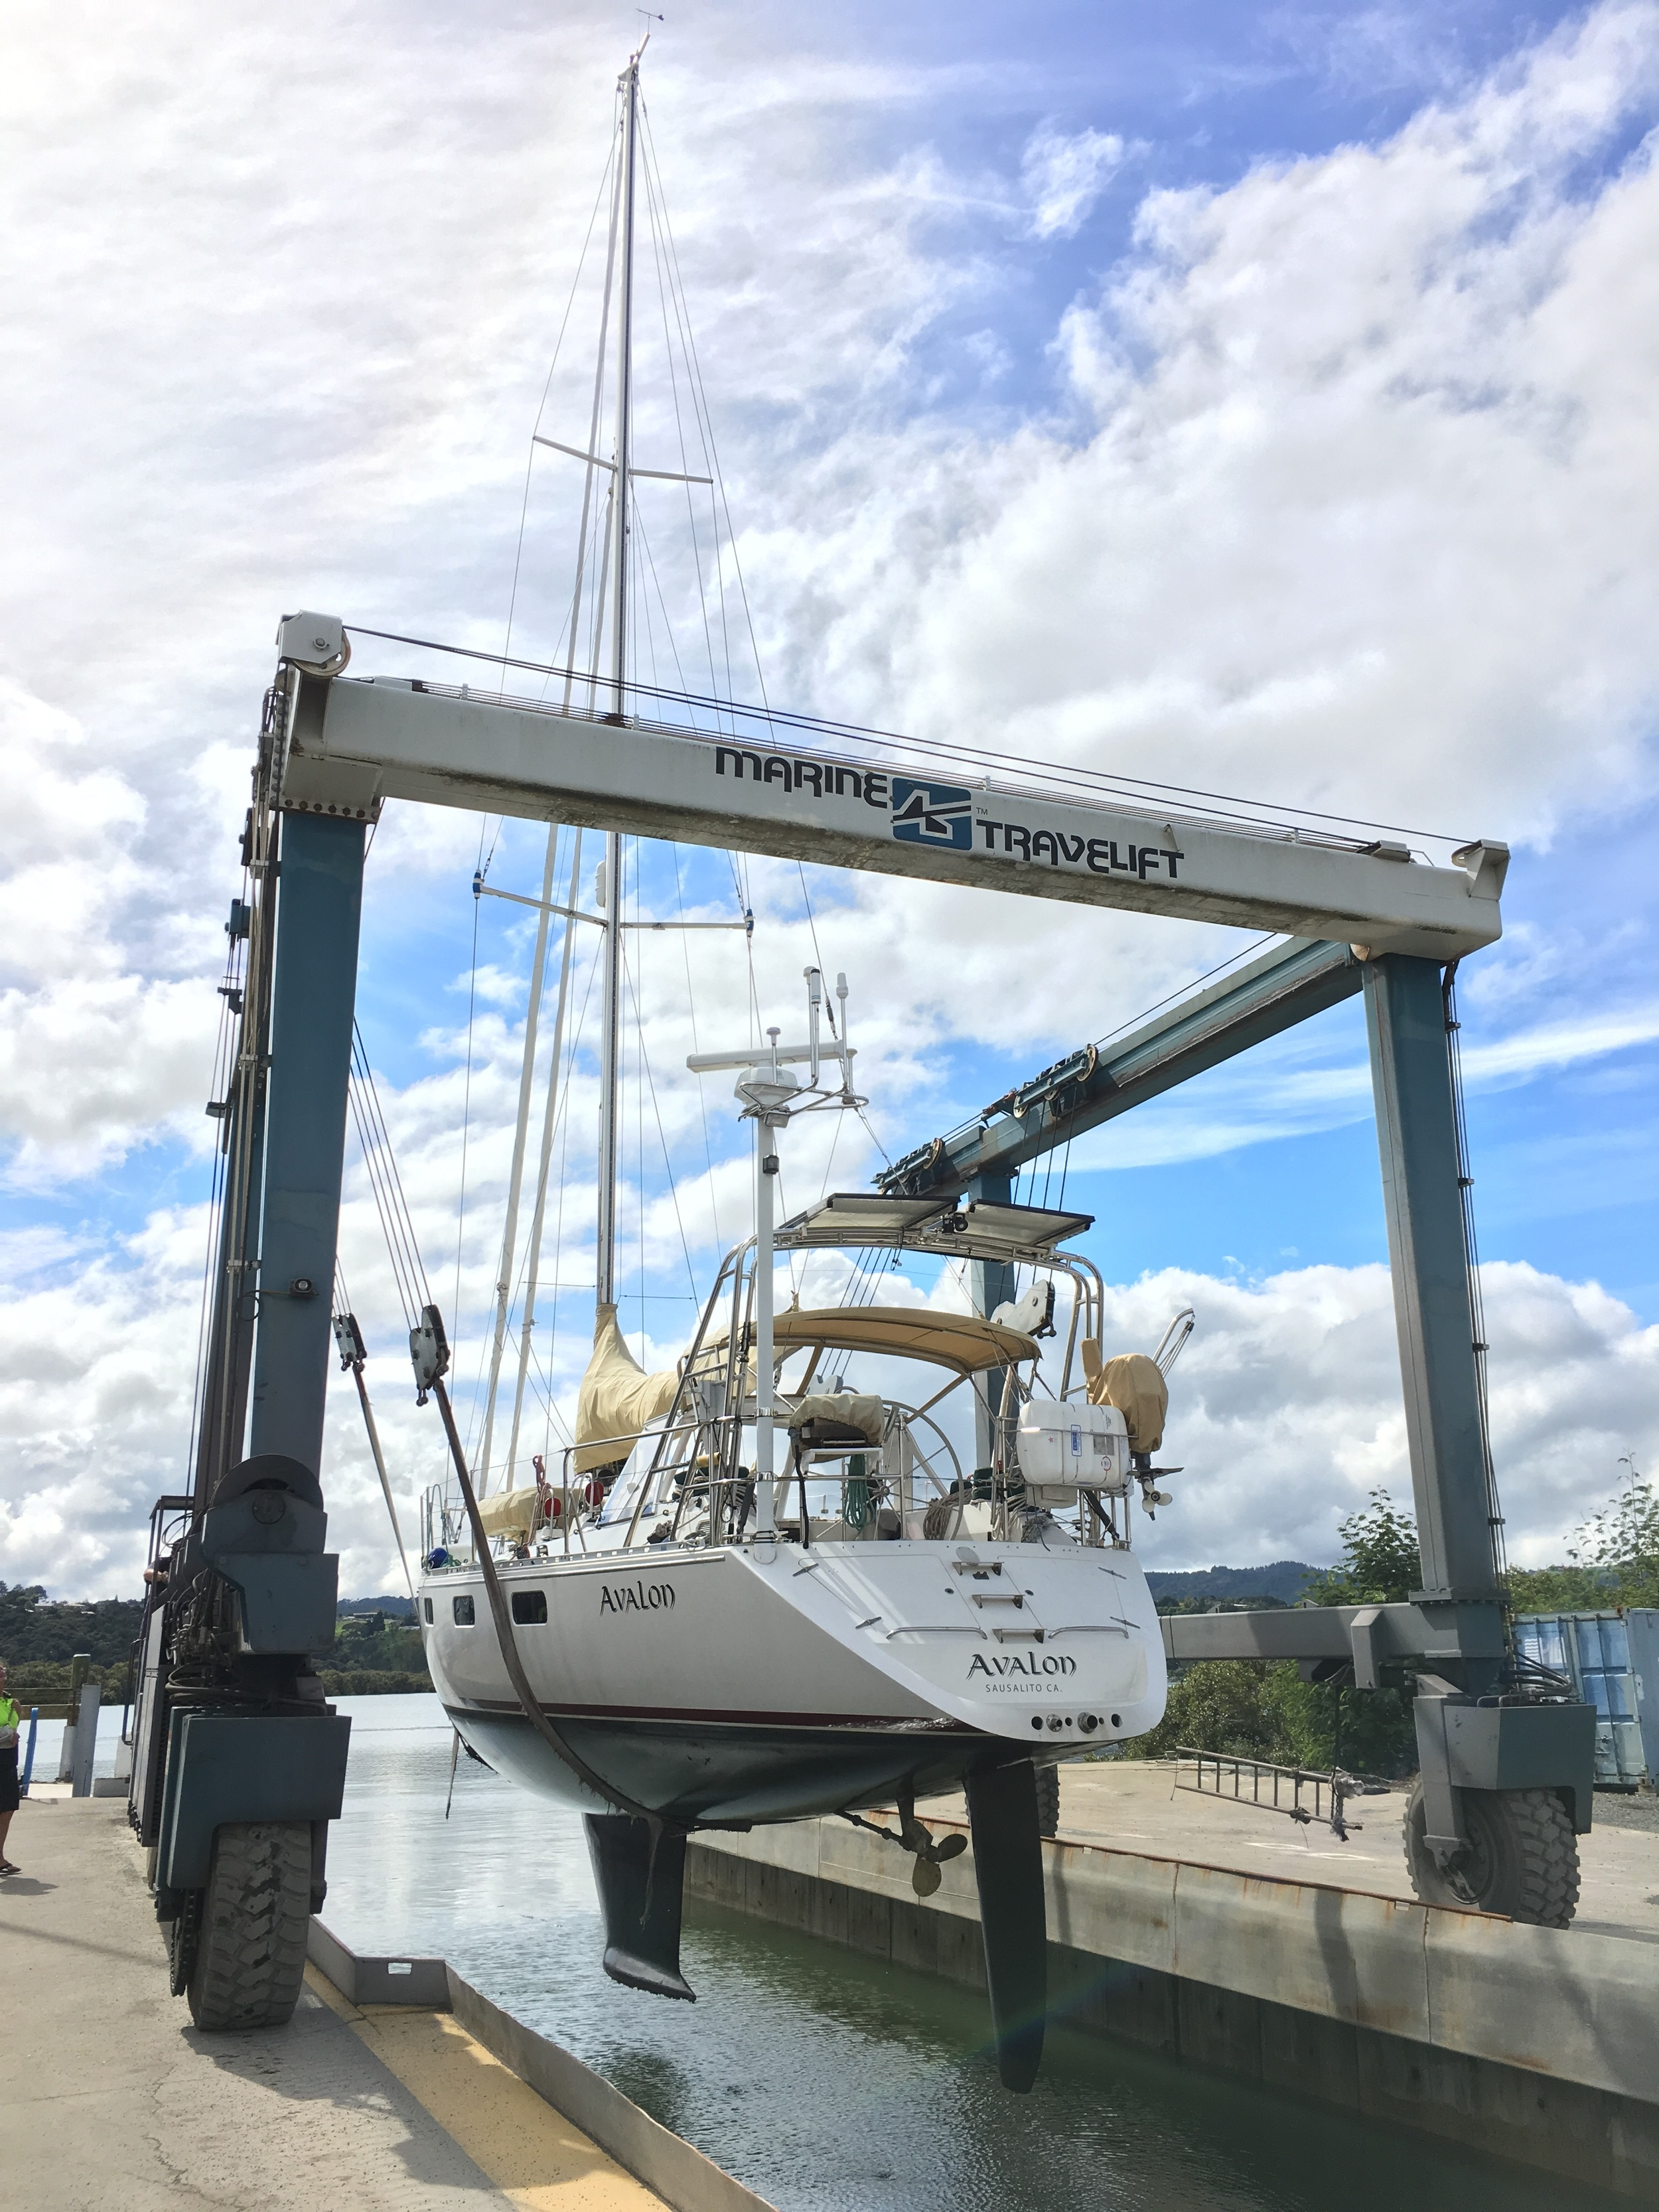 Hauled out of the water by a huge crane thing.